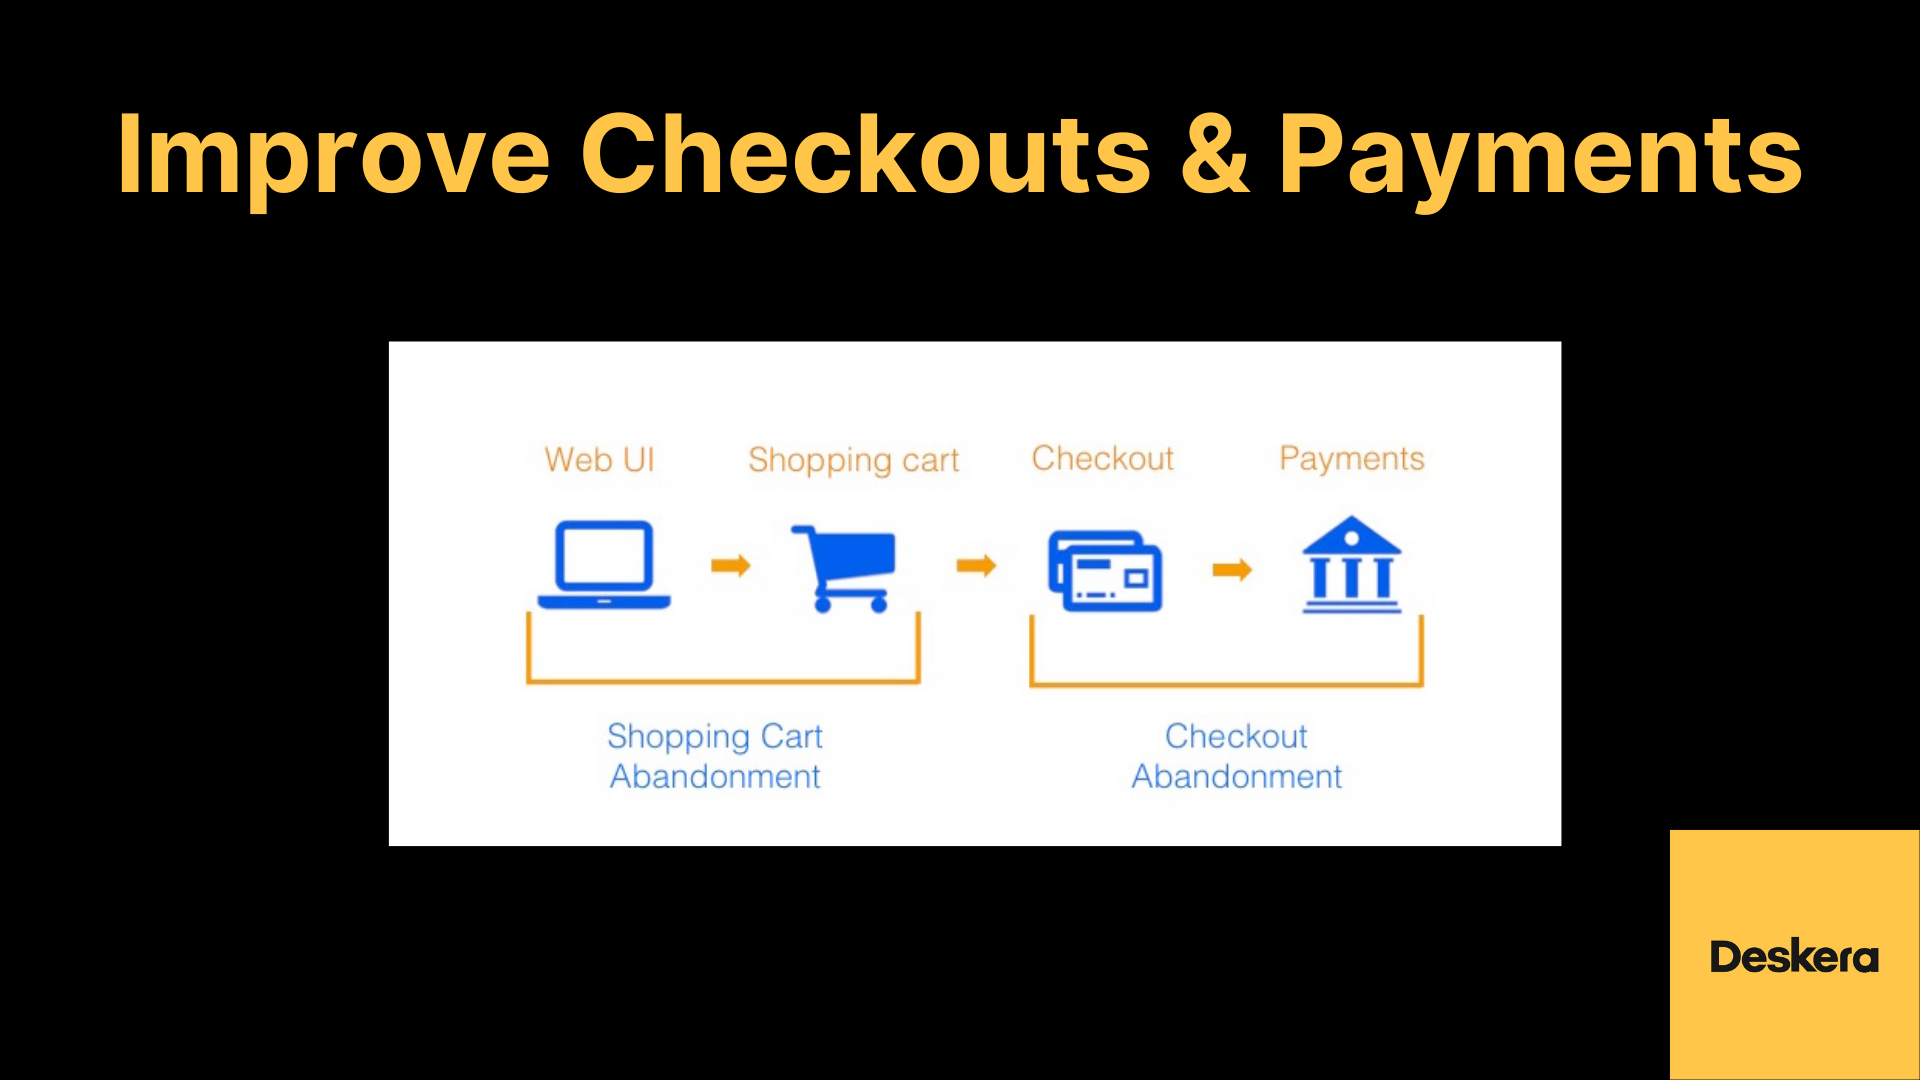 Improving Checkouts and Payments